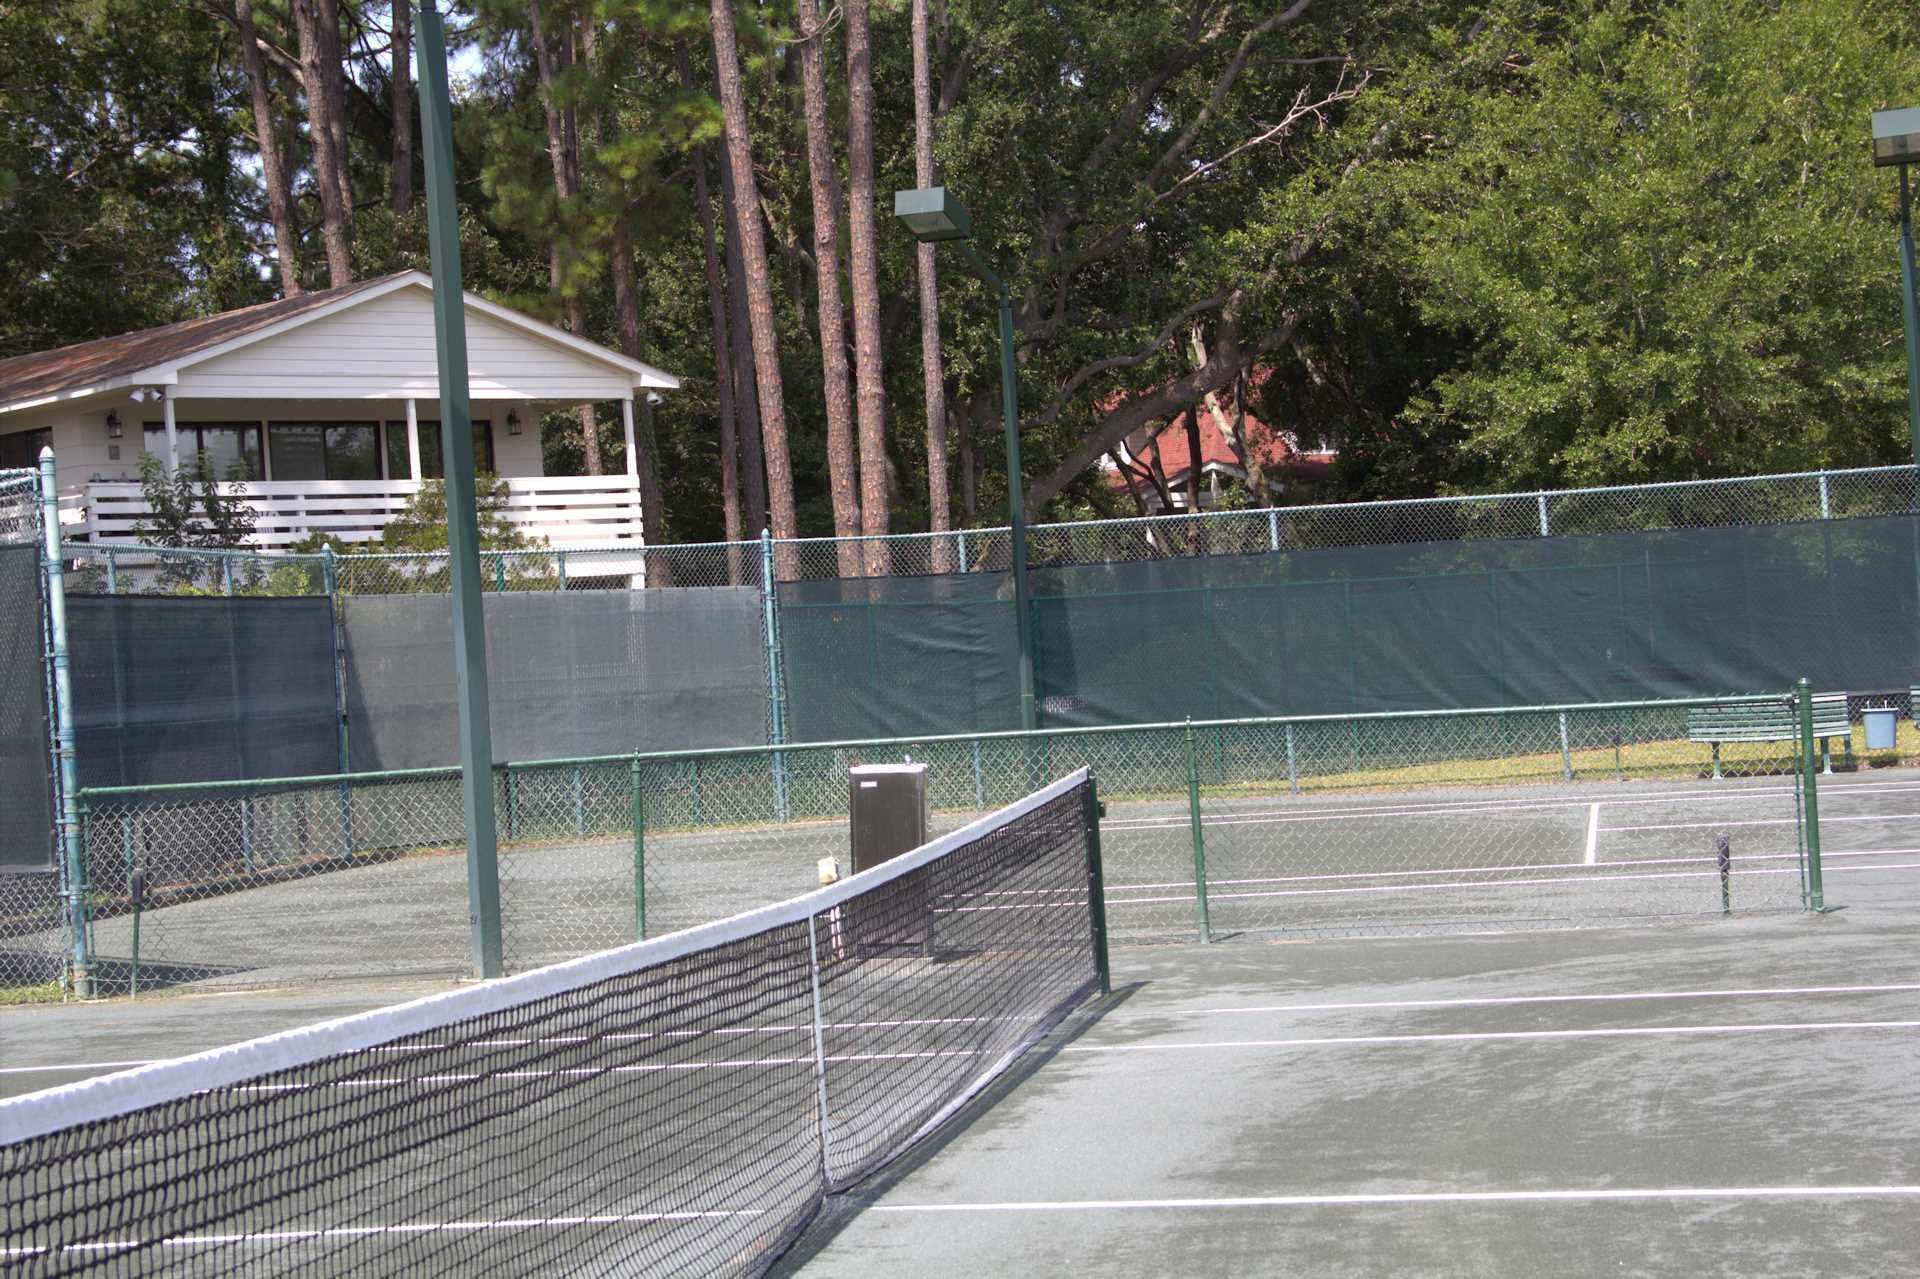 There is 1 hour of free tennis everyday